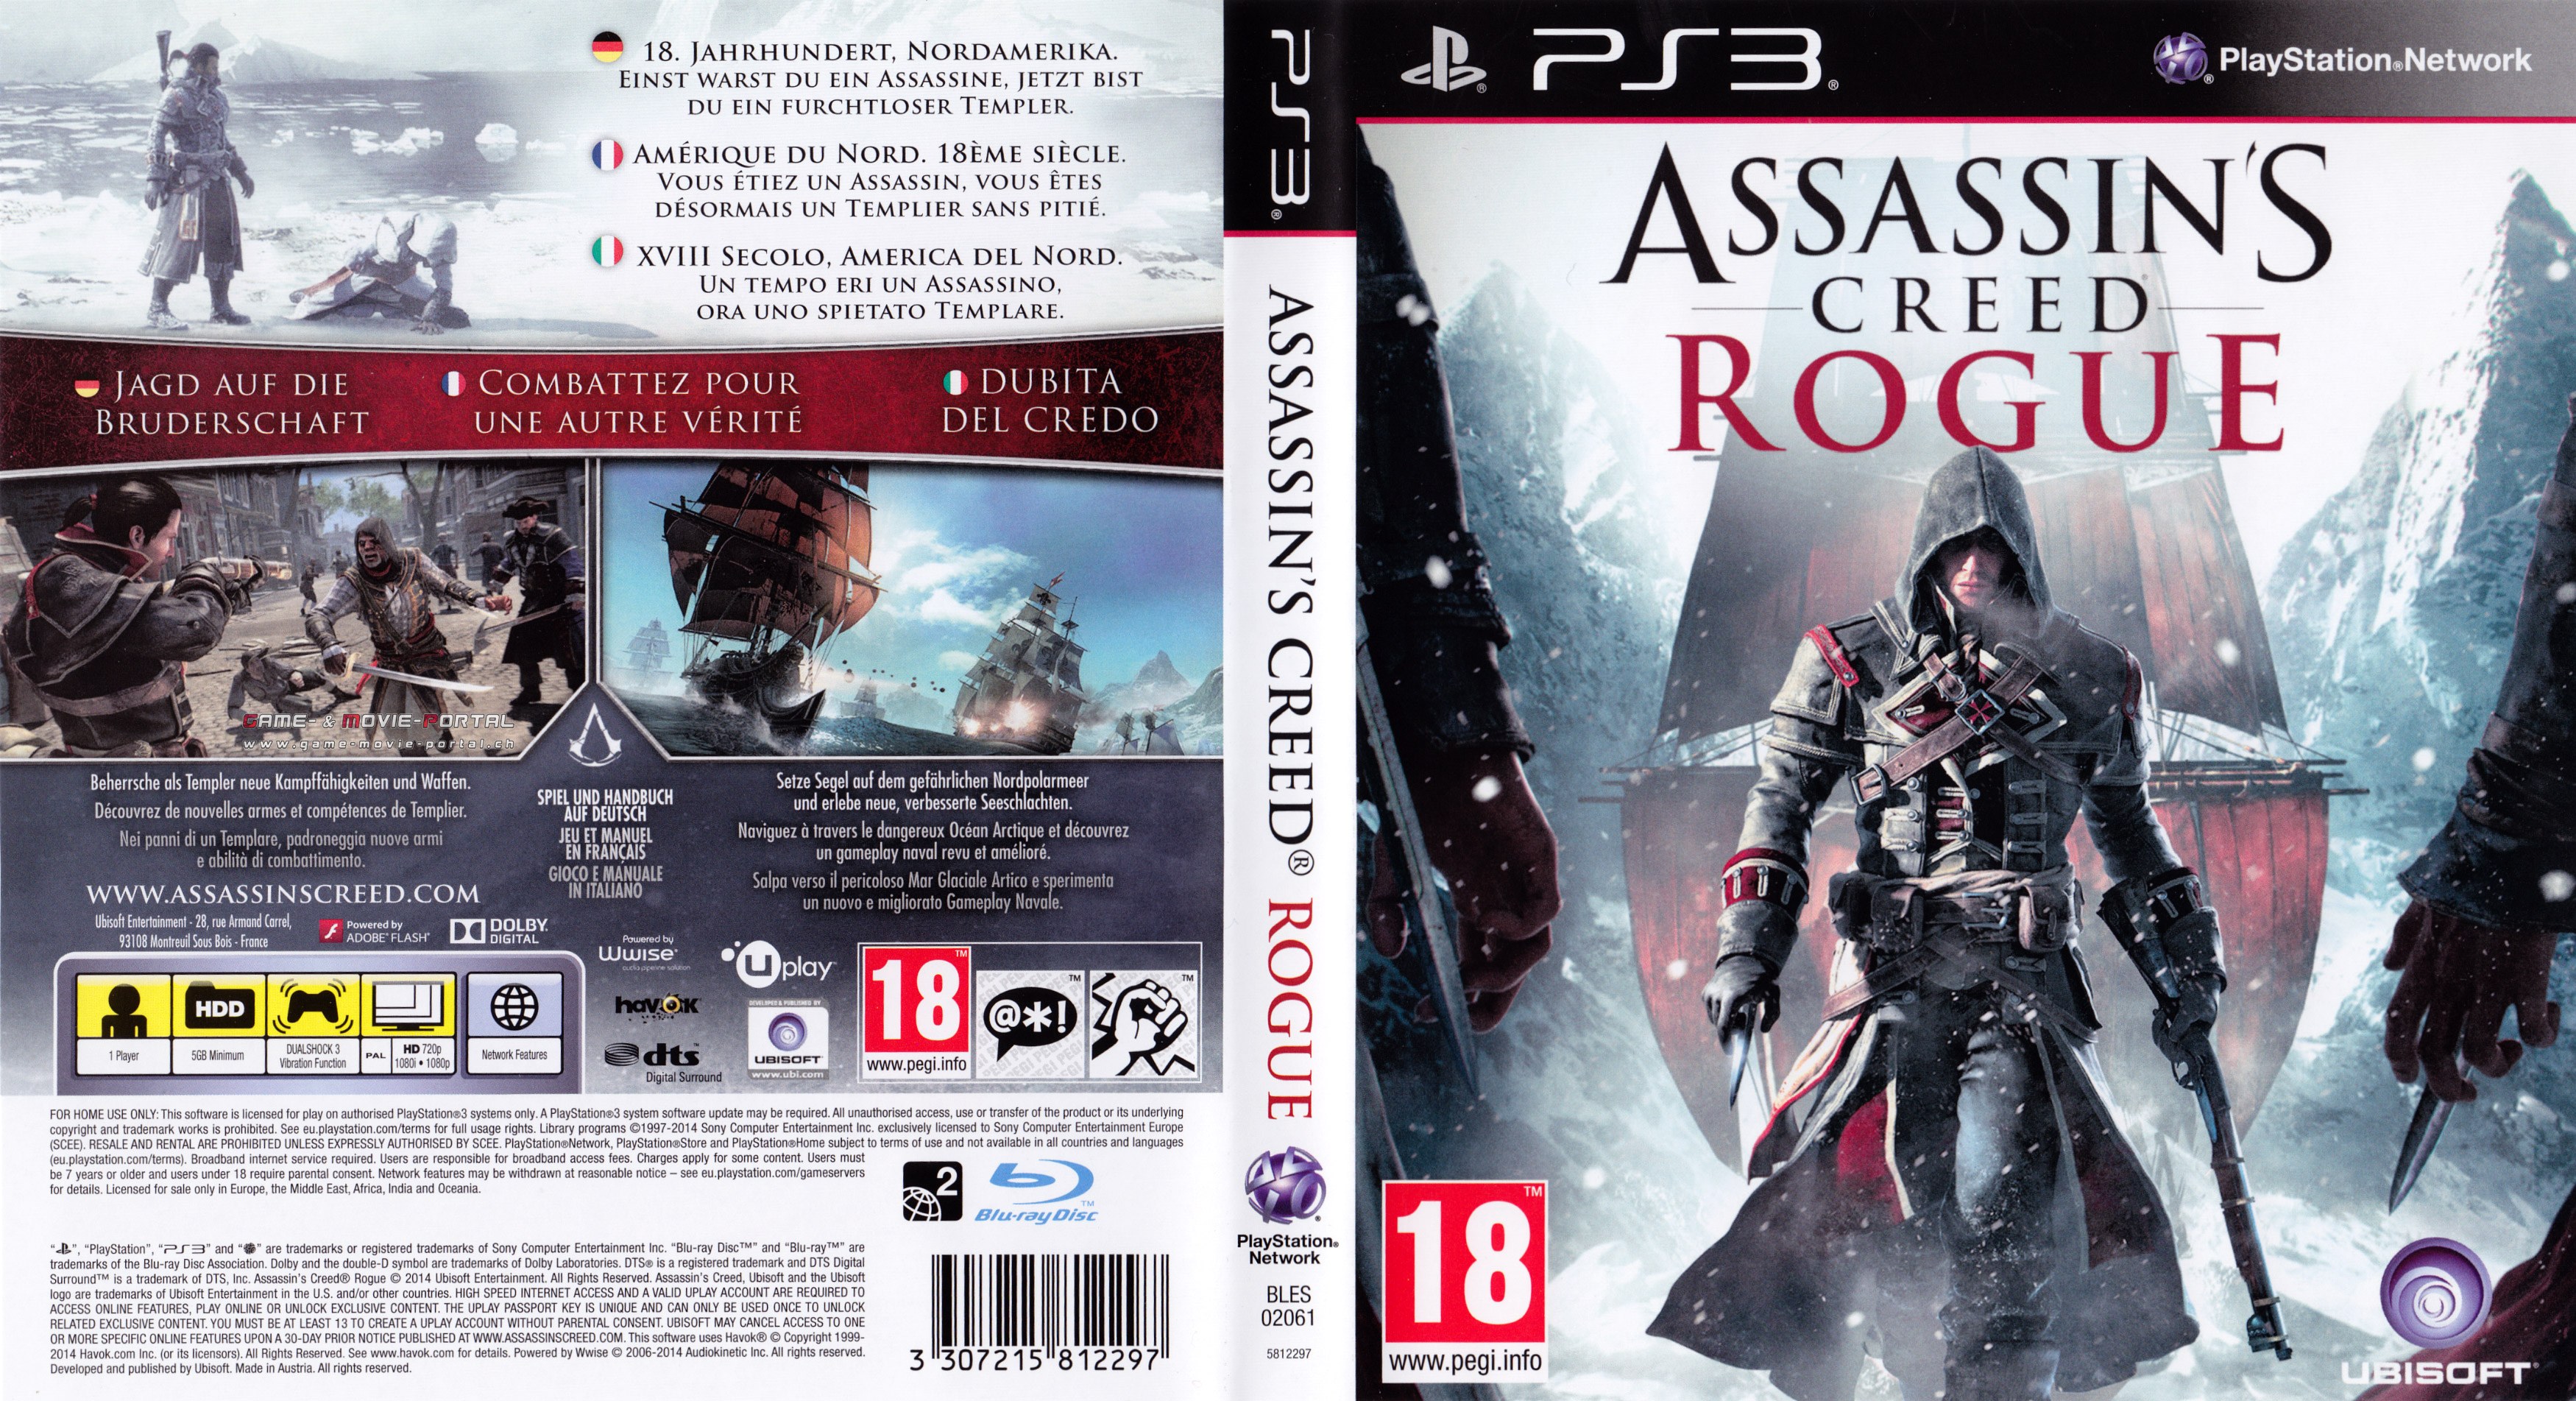 Assassins Creed Rogue Playstation 3 Covers Cover Century